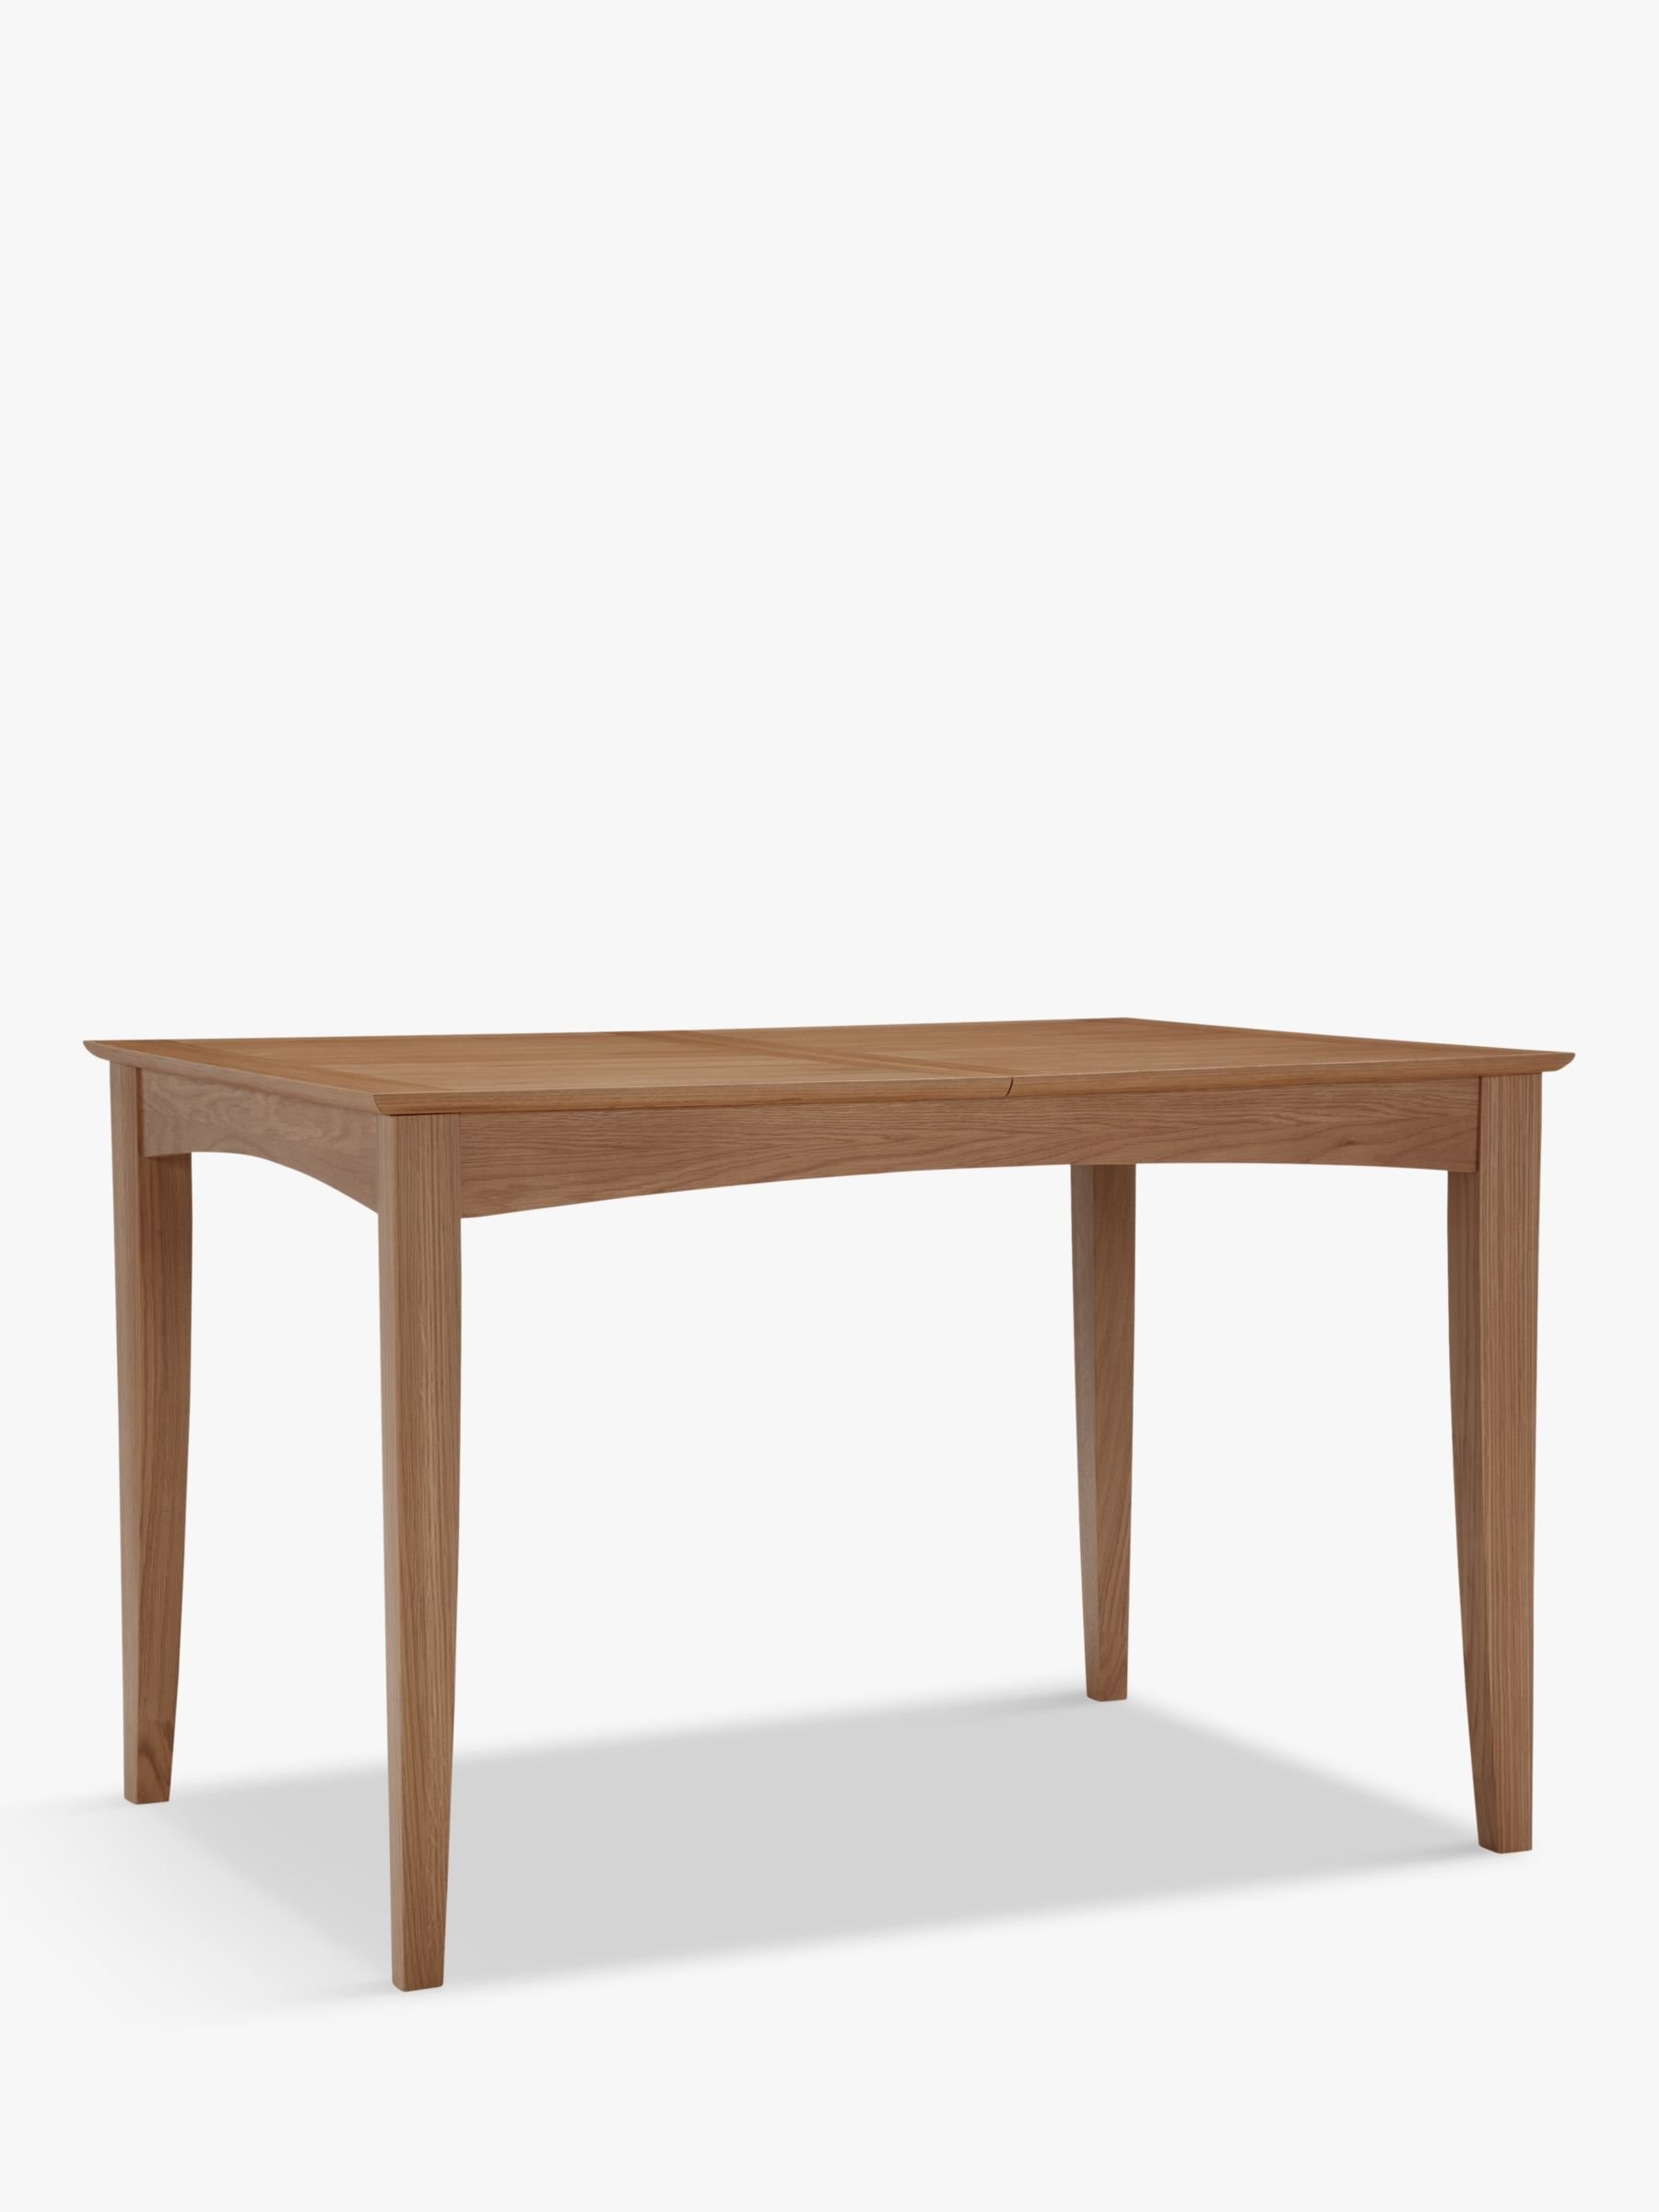 fee79a146aa6 John Lewis & Partners Alba 4-6 Seater Extending Dining Table at John Lewis  & Partners